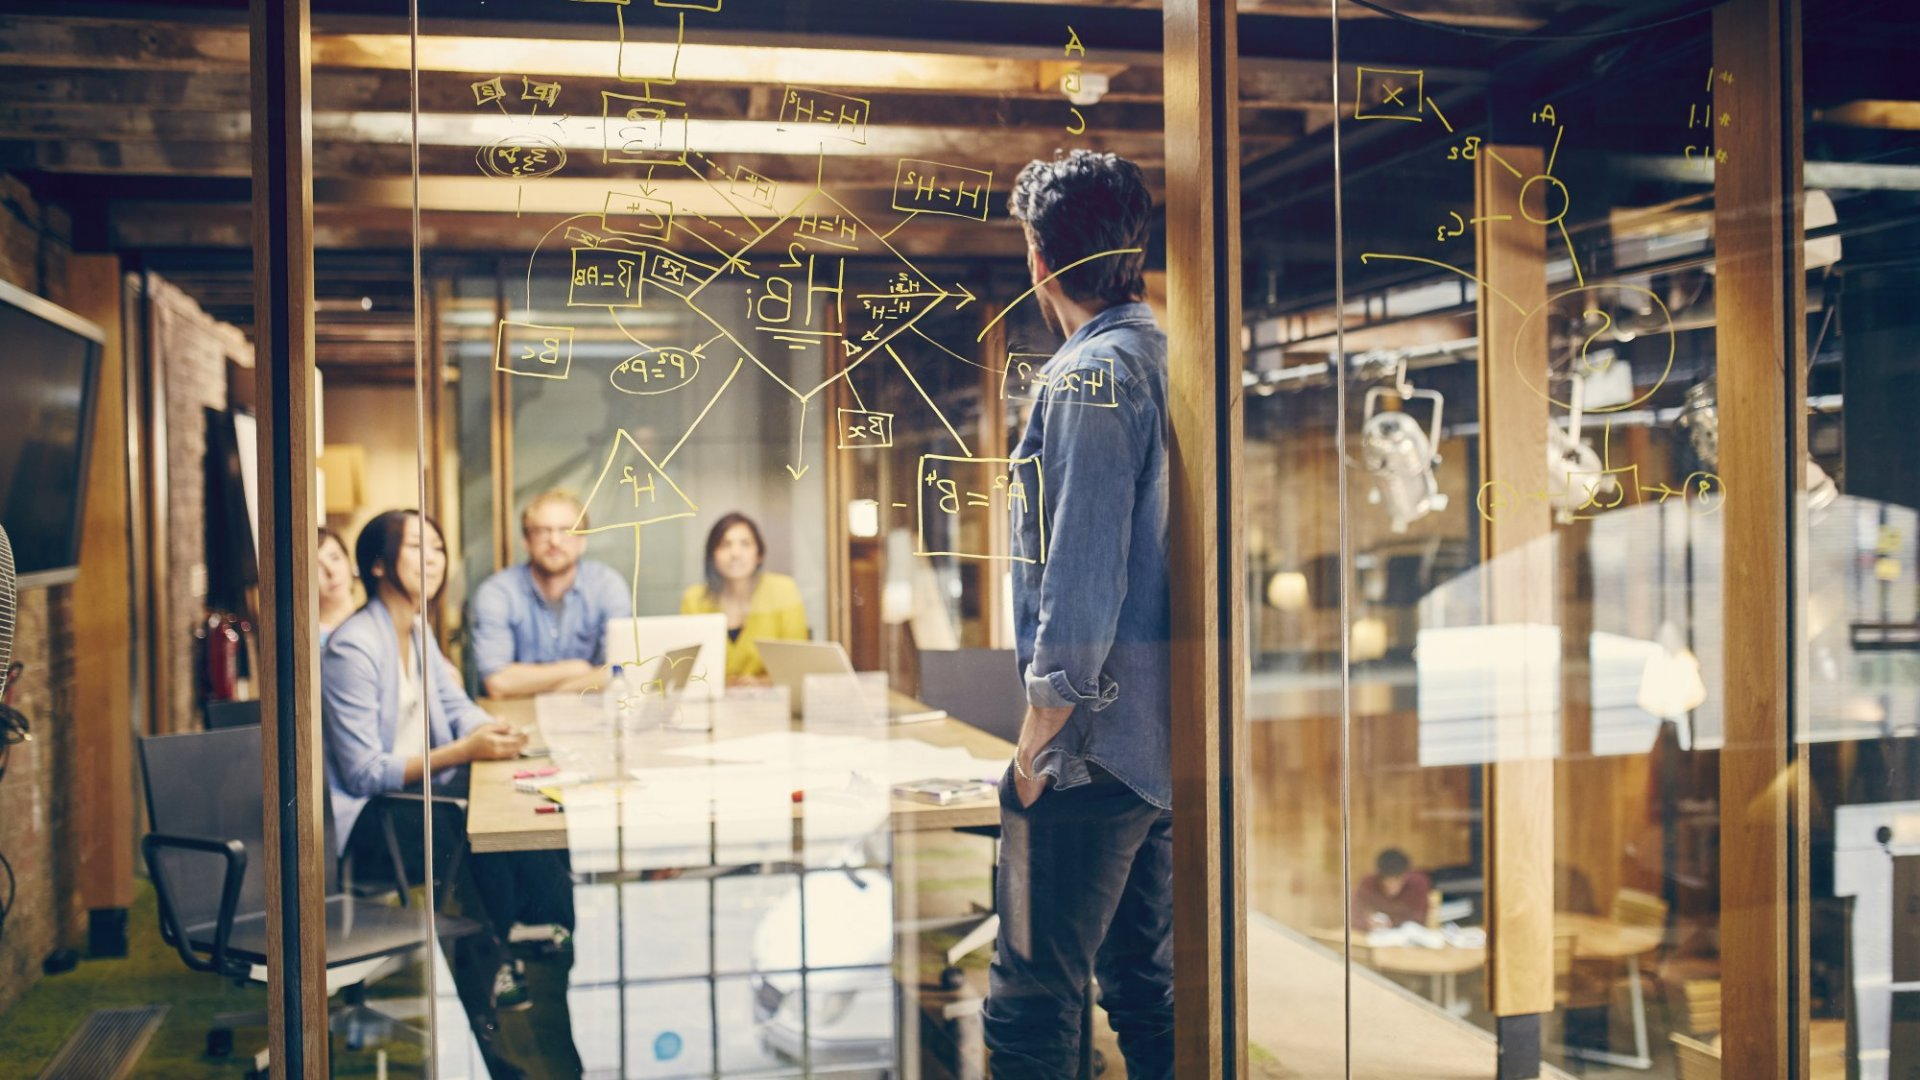 Why an Original Idea Isn't as Important as Having the Right Team